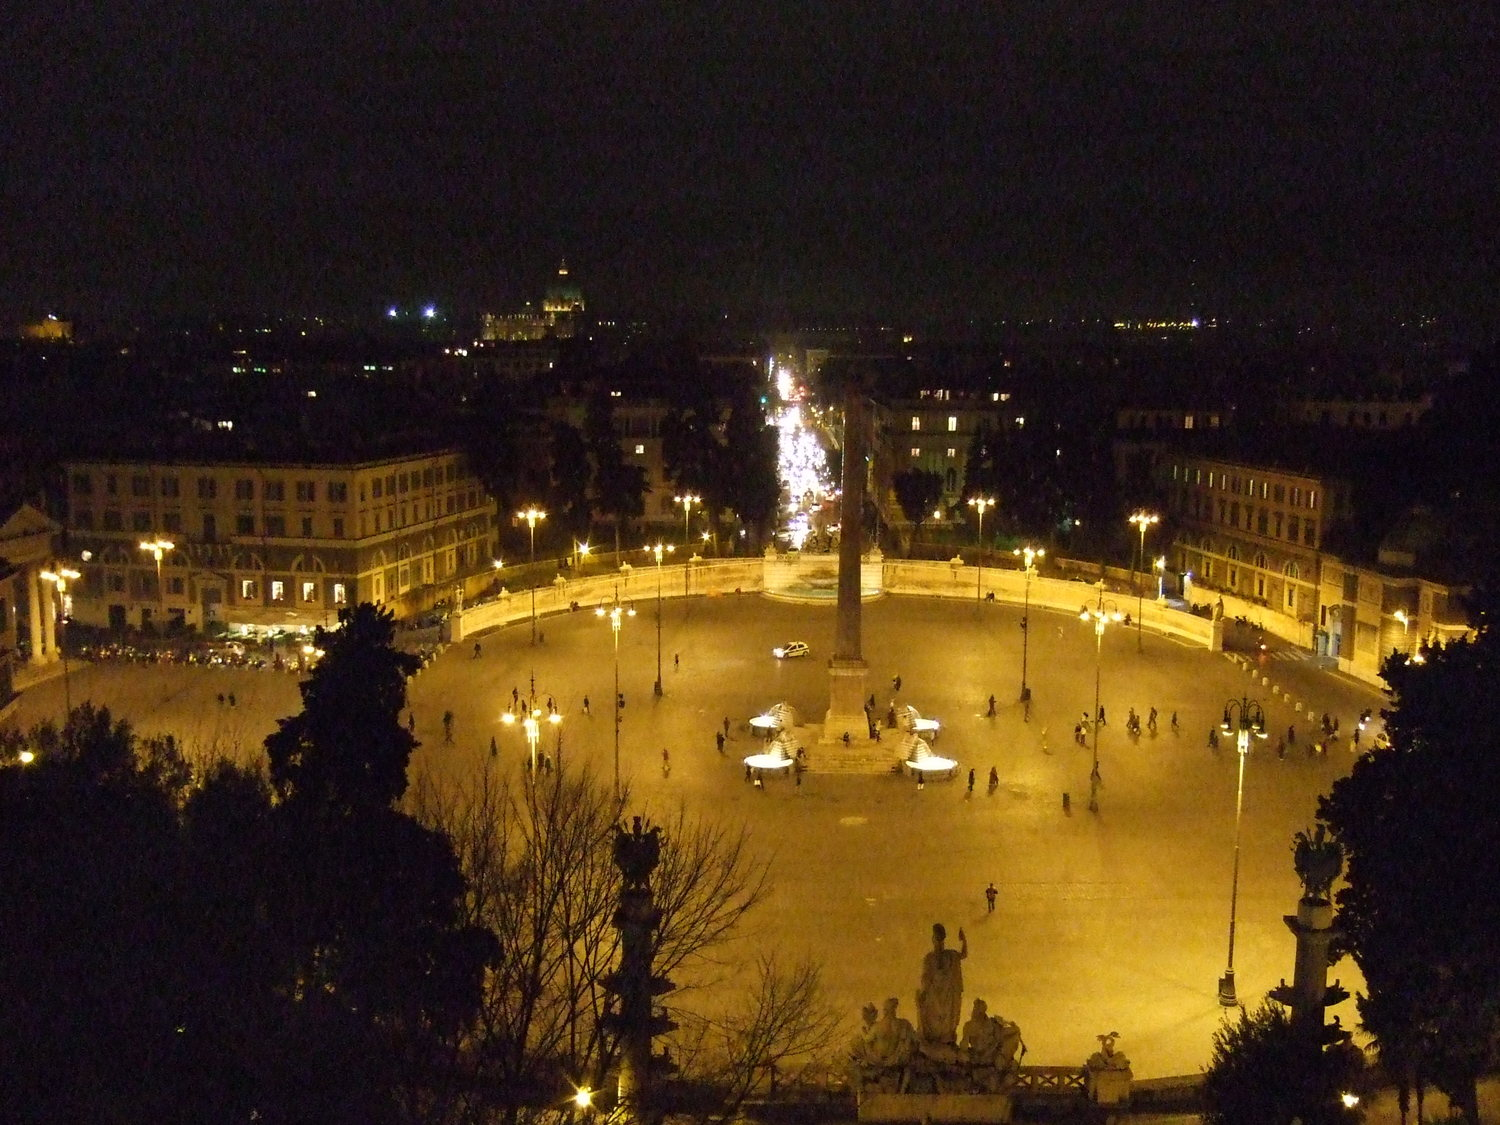 Rome at night. The Pincio Gardens above the Piazza del Popolo.